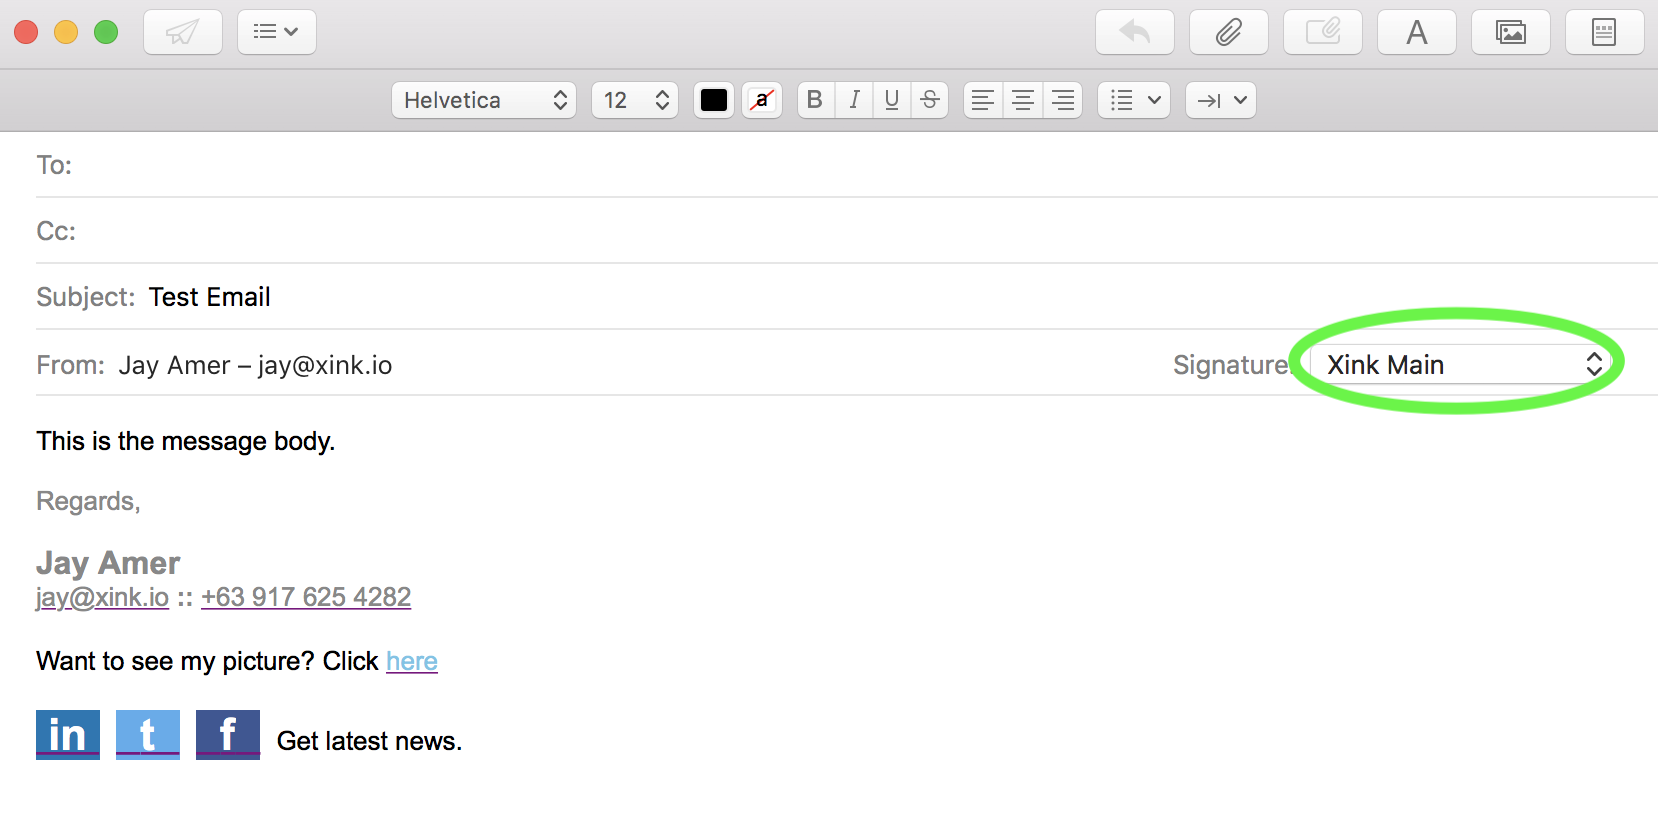 Email Signature - How to install the client app on Mac OS : EmaiI